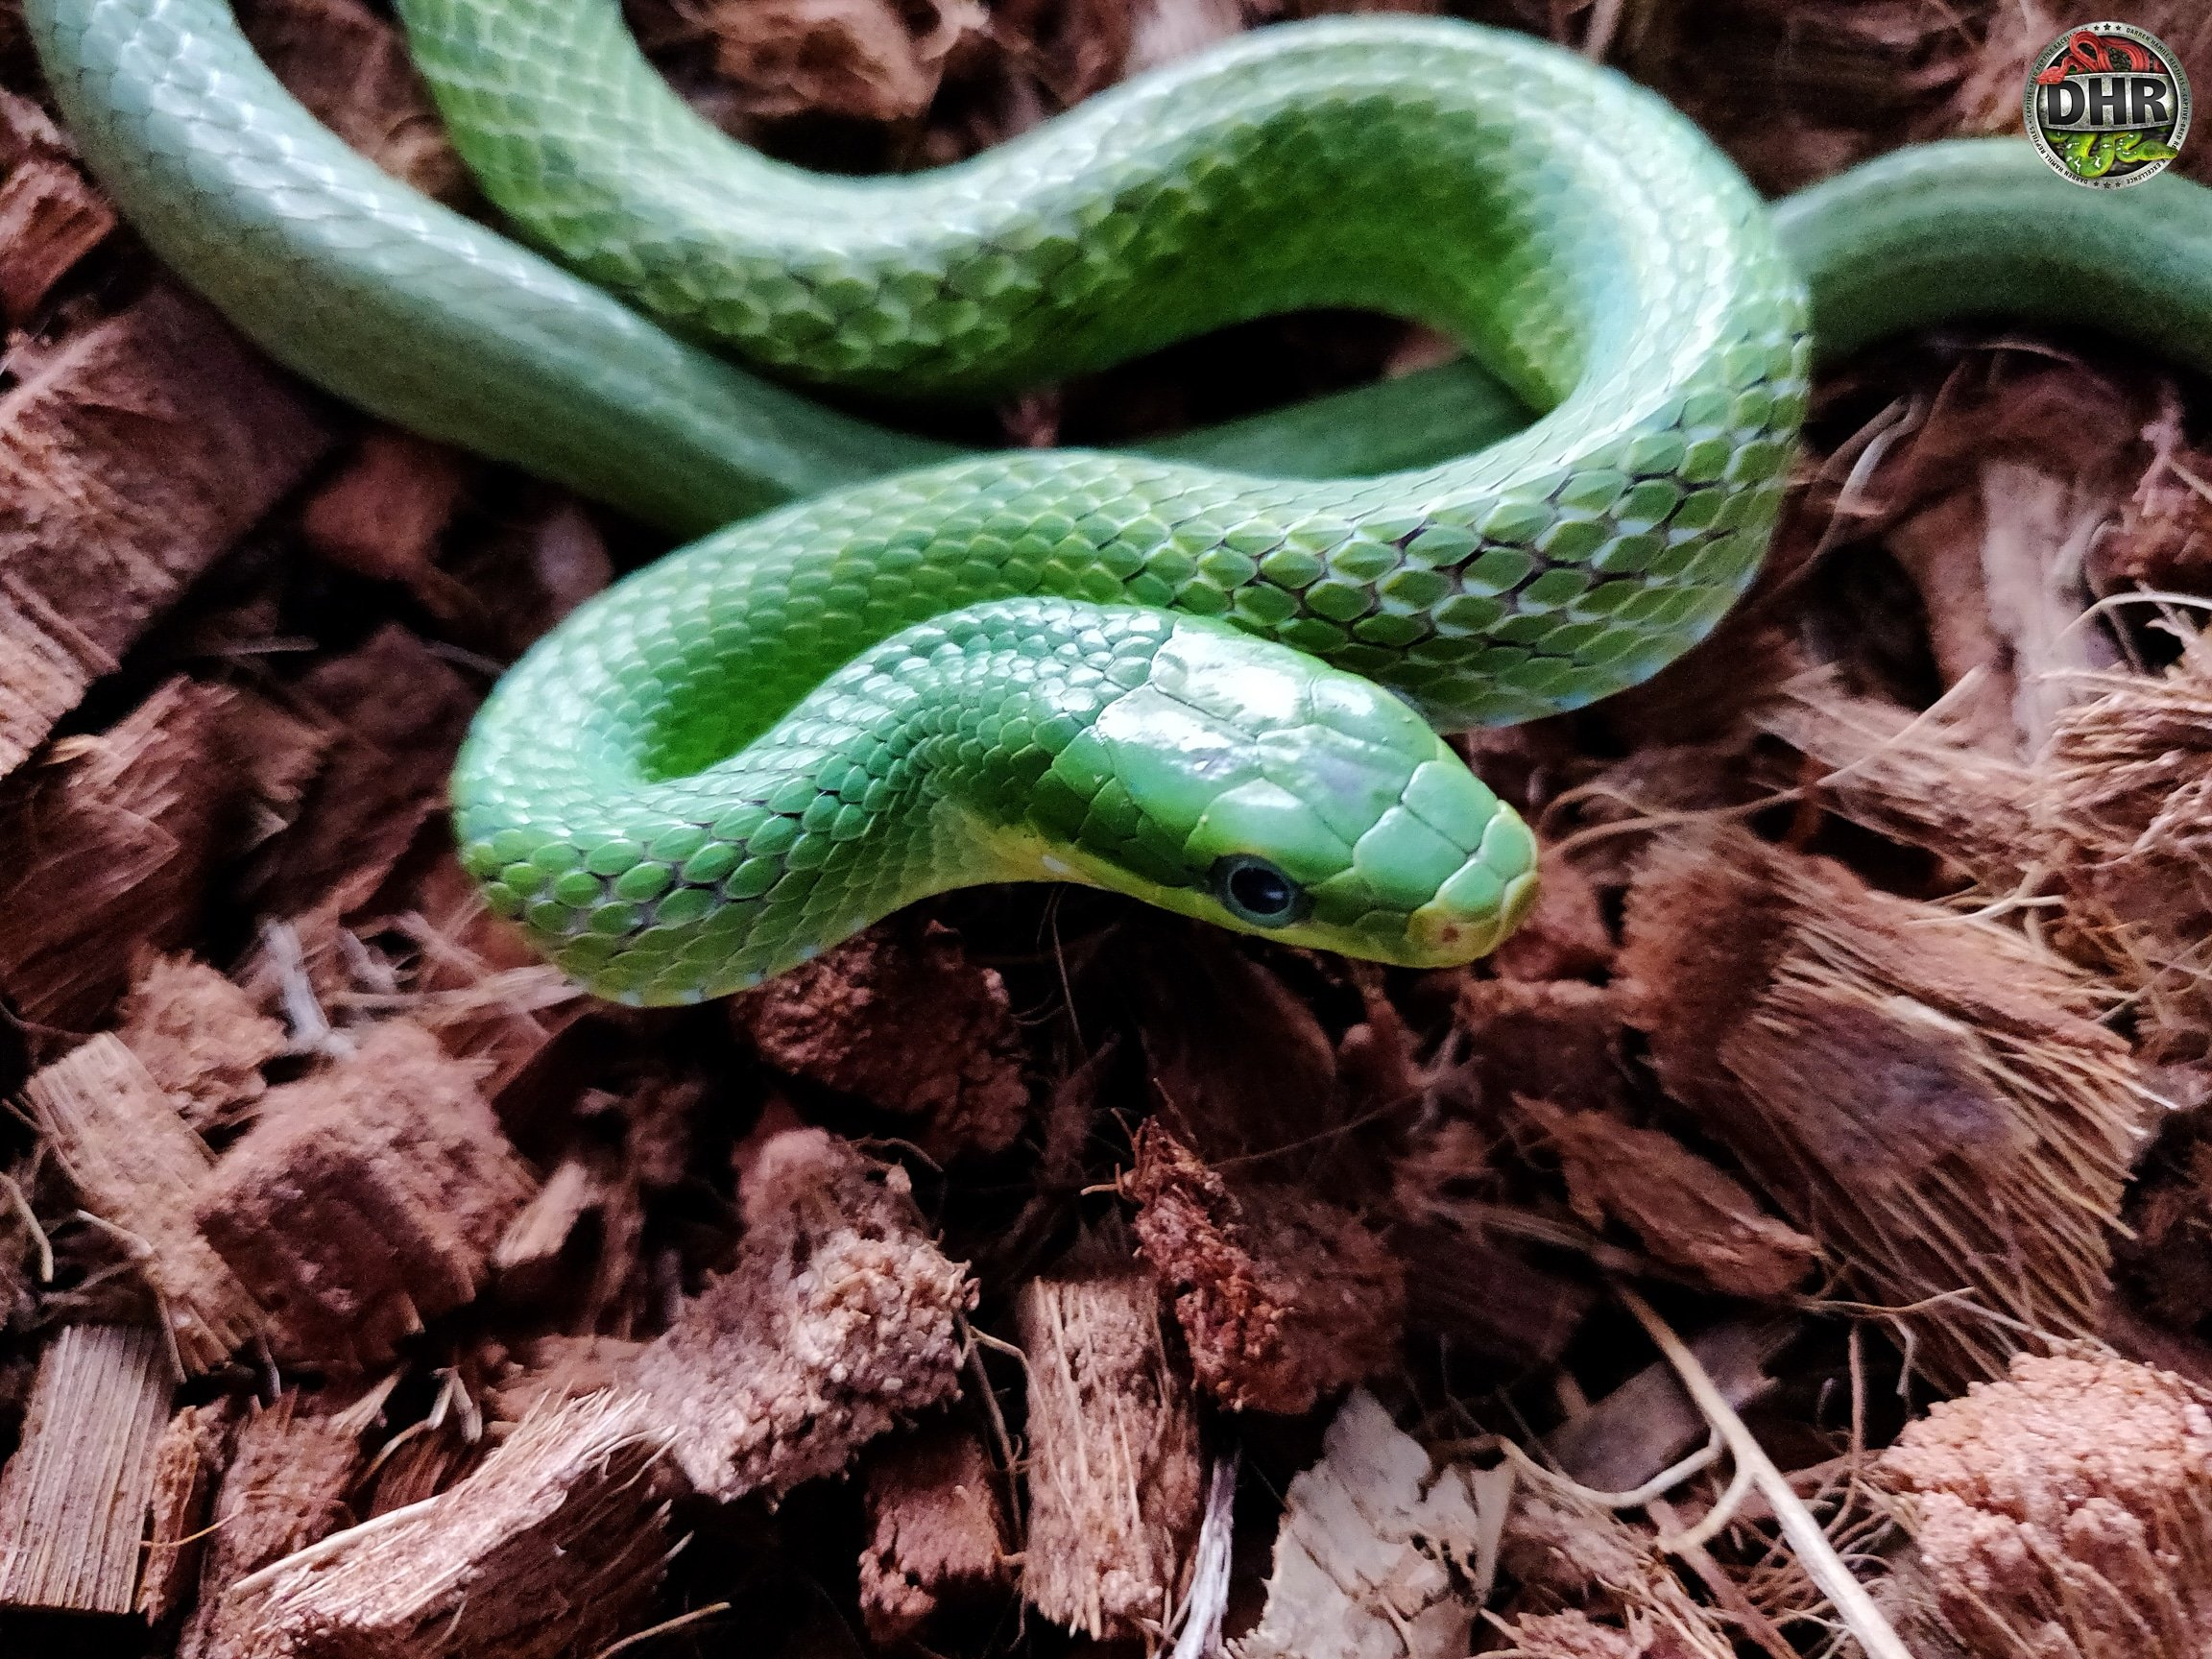 For our Friday post we thought we would share a picture of a Green Bush Rat Snake